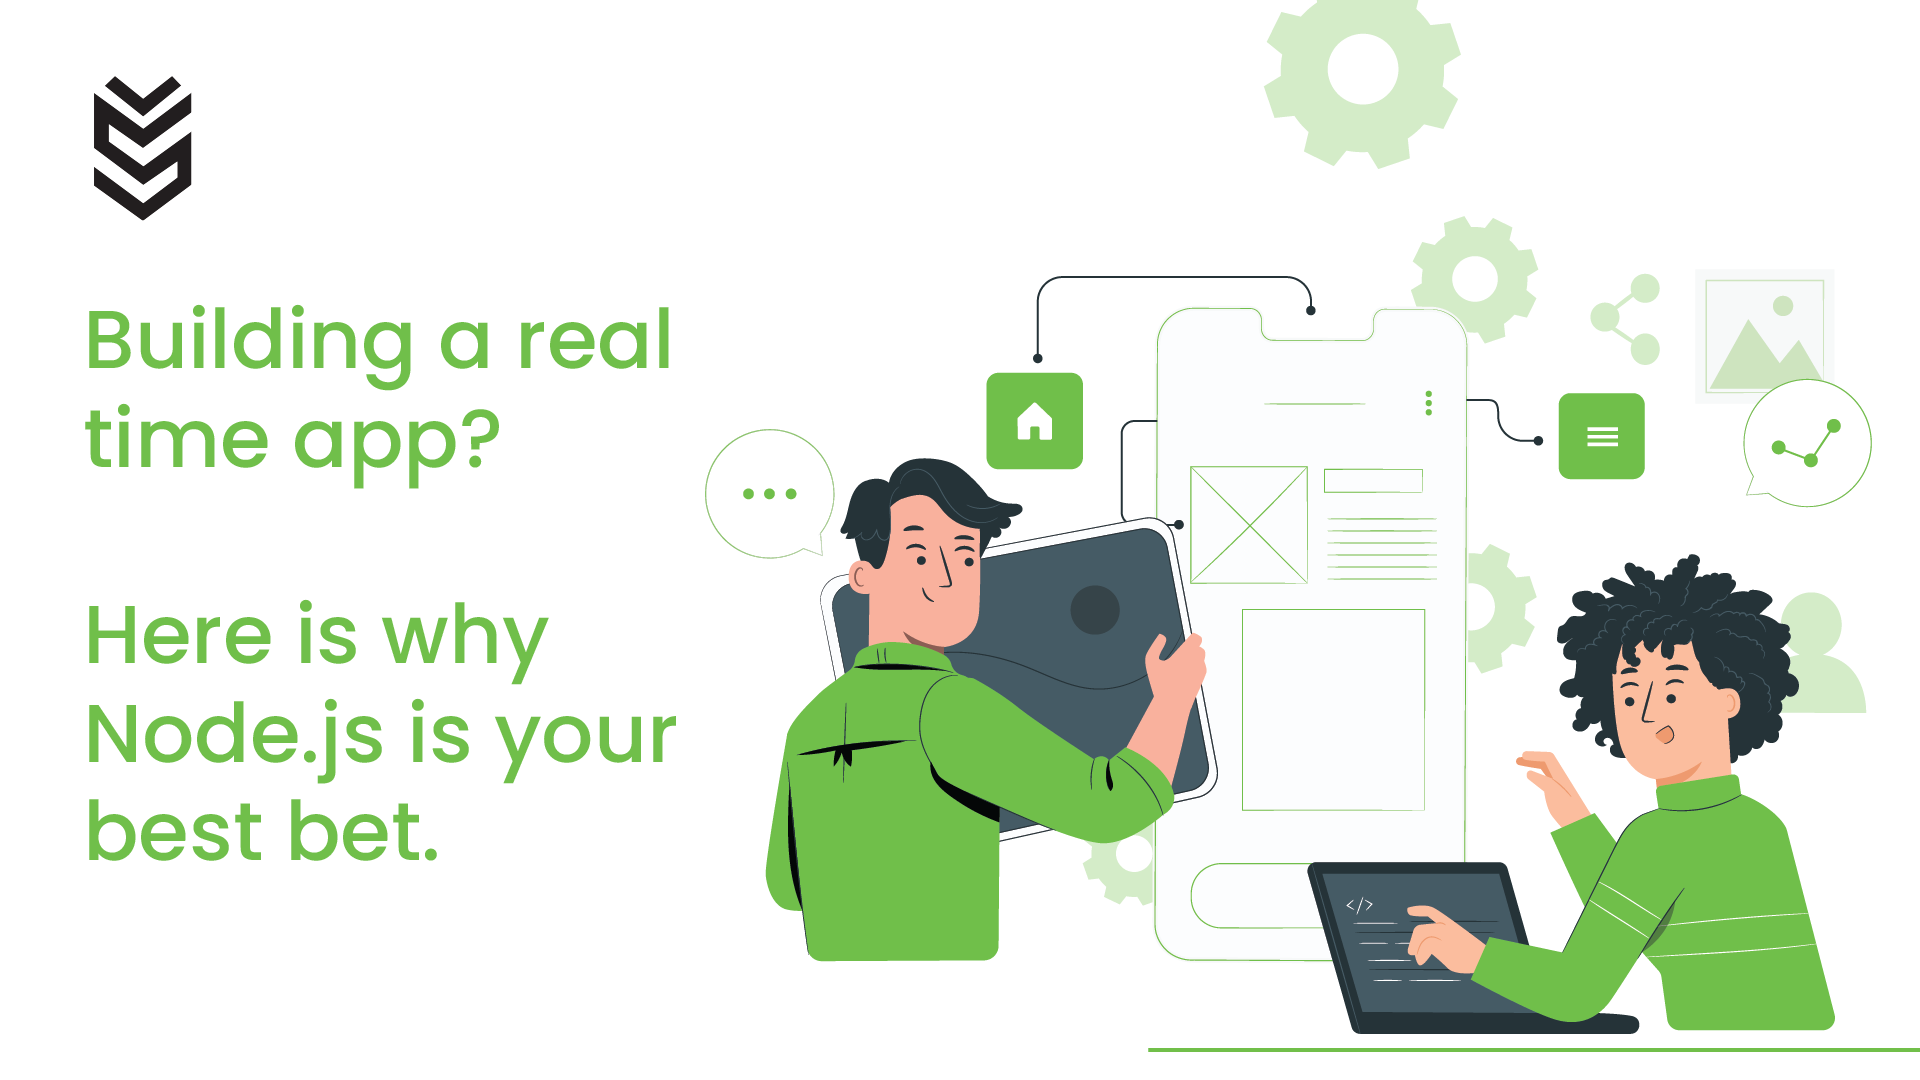 Building a real-time app? Here's why node. Js is your best bet.